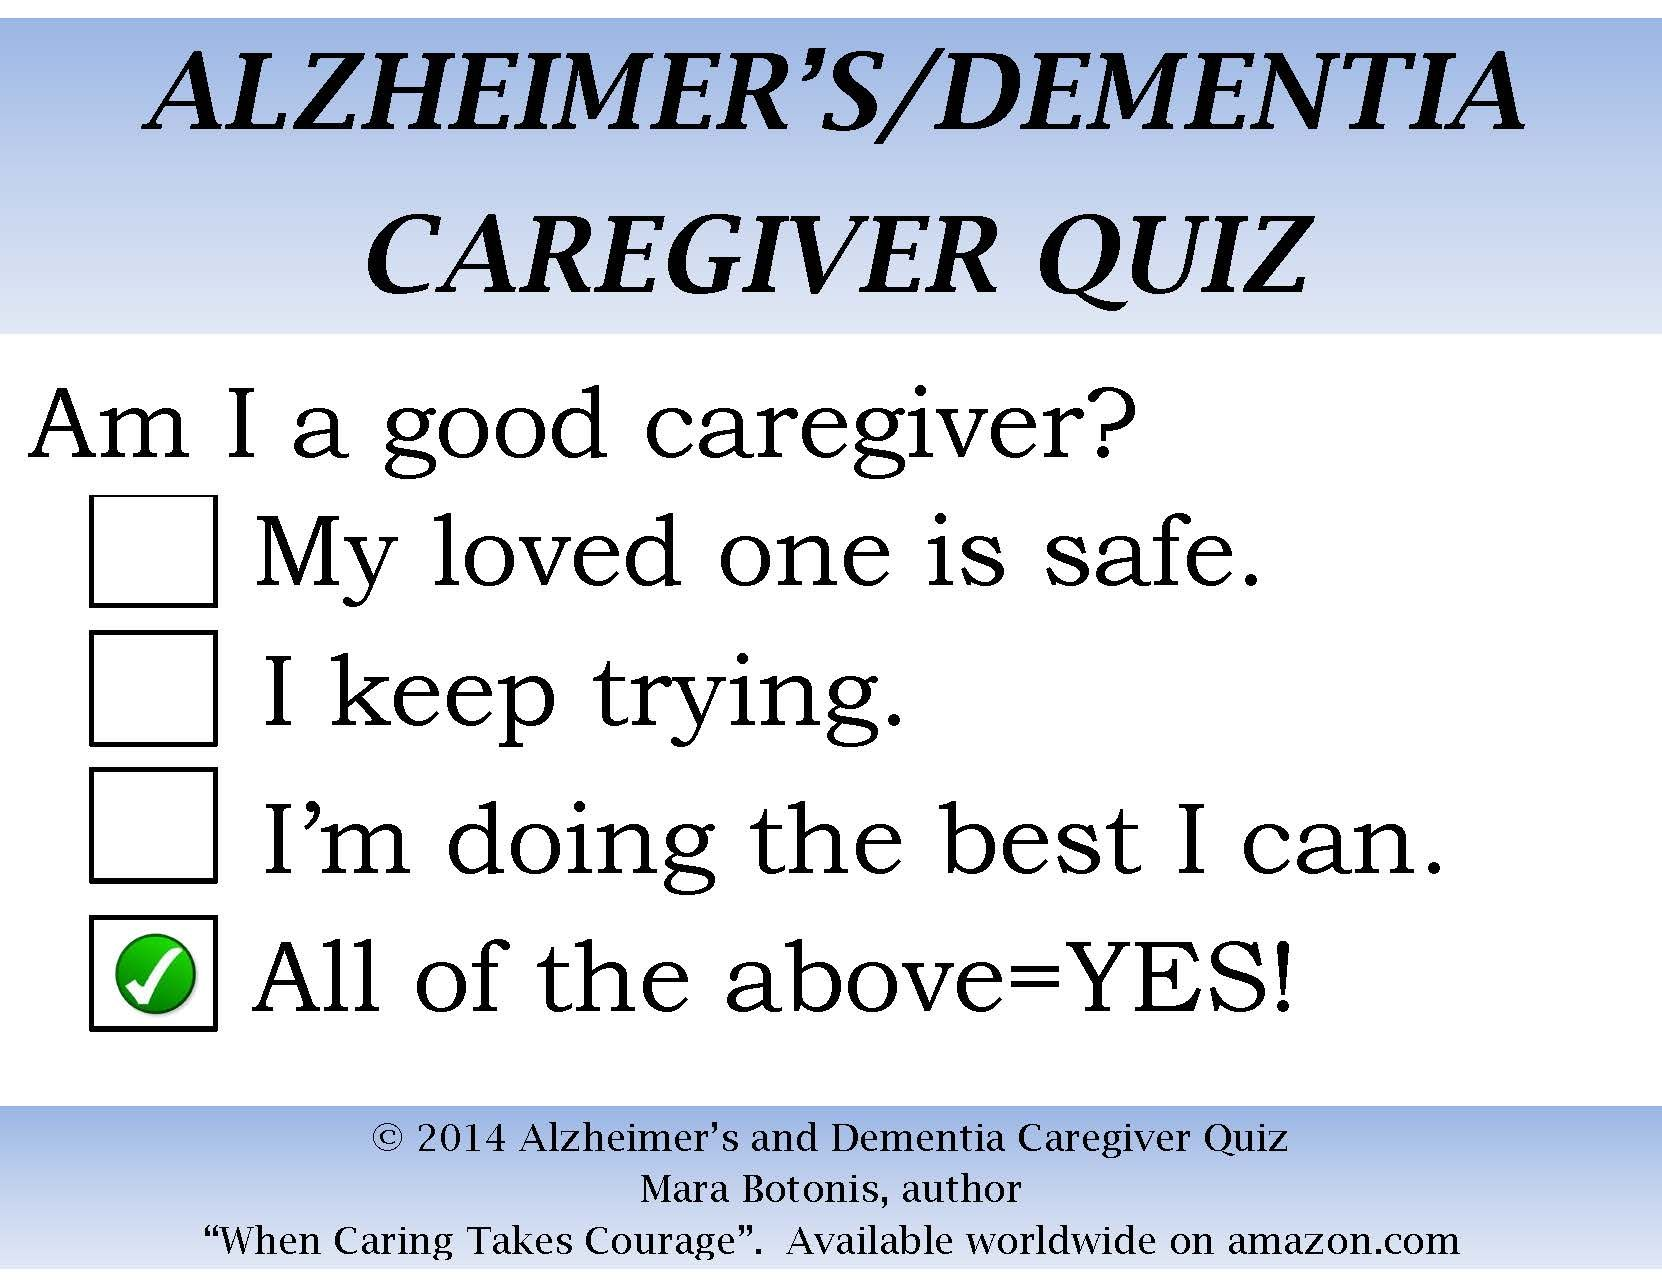 Quotes Quiz Alzheimer's And Dementia Caregiver Quiz  Alzheimer's And Dementia